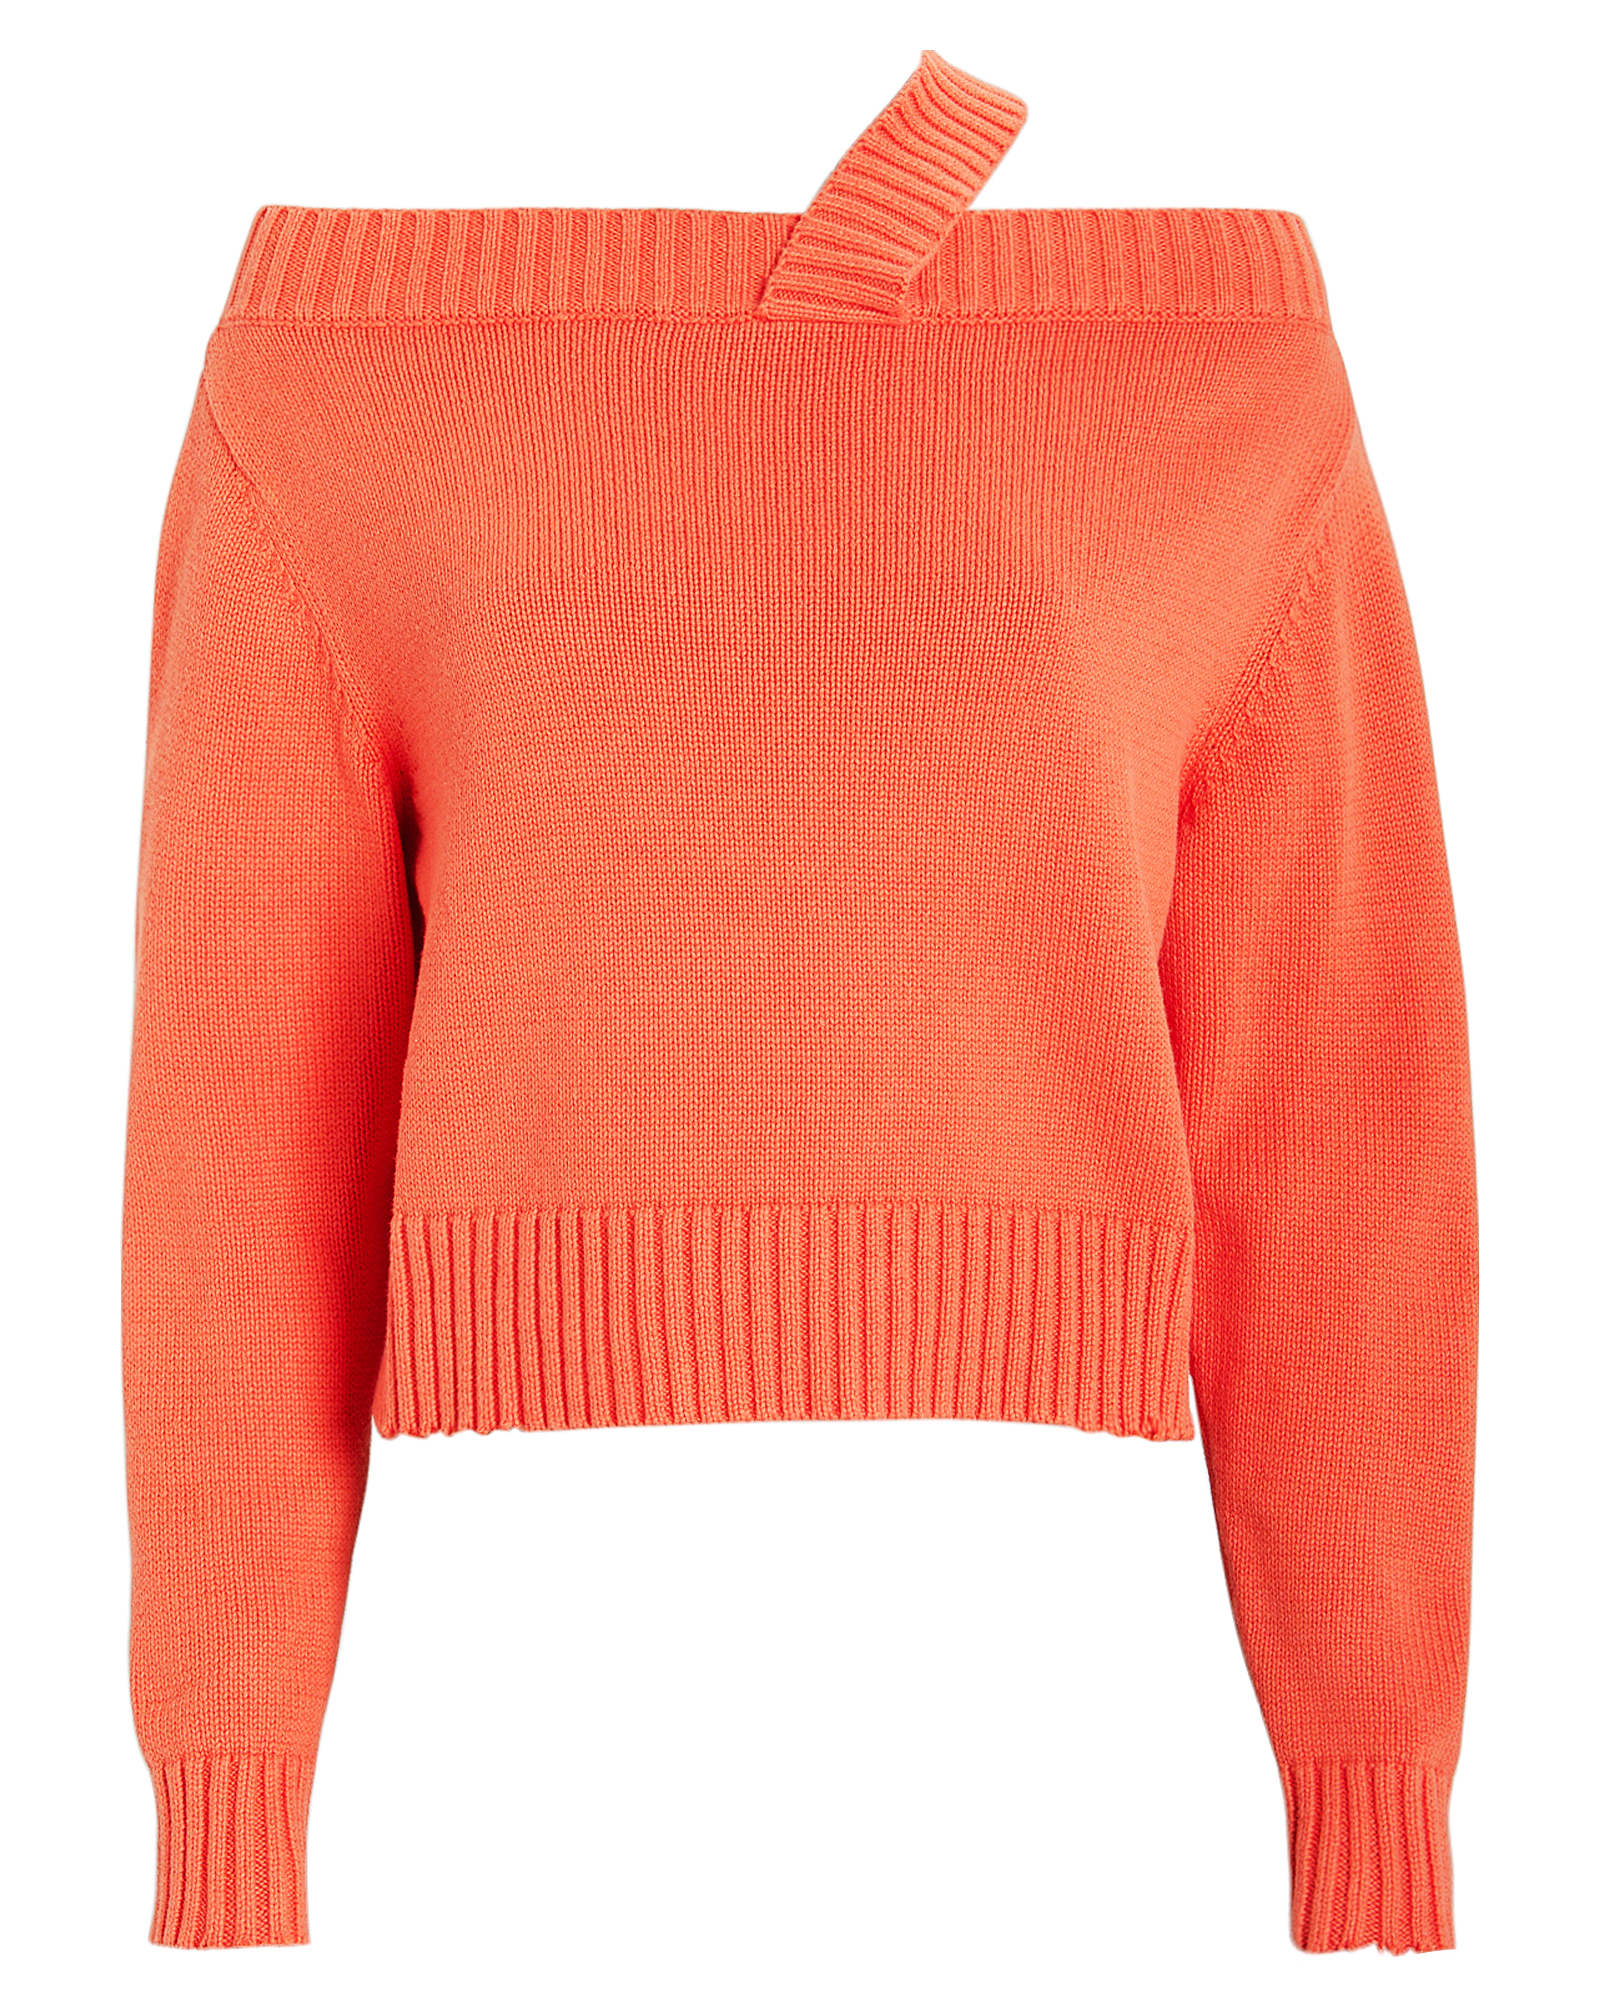 Rta Knits RTA BECKETT KNIT COTTON SWEATER  CORAL M